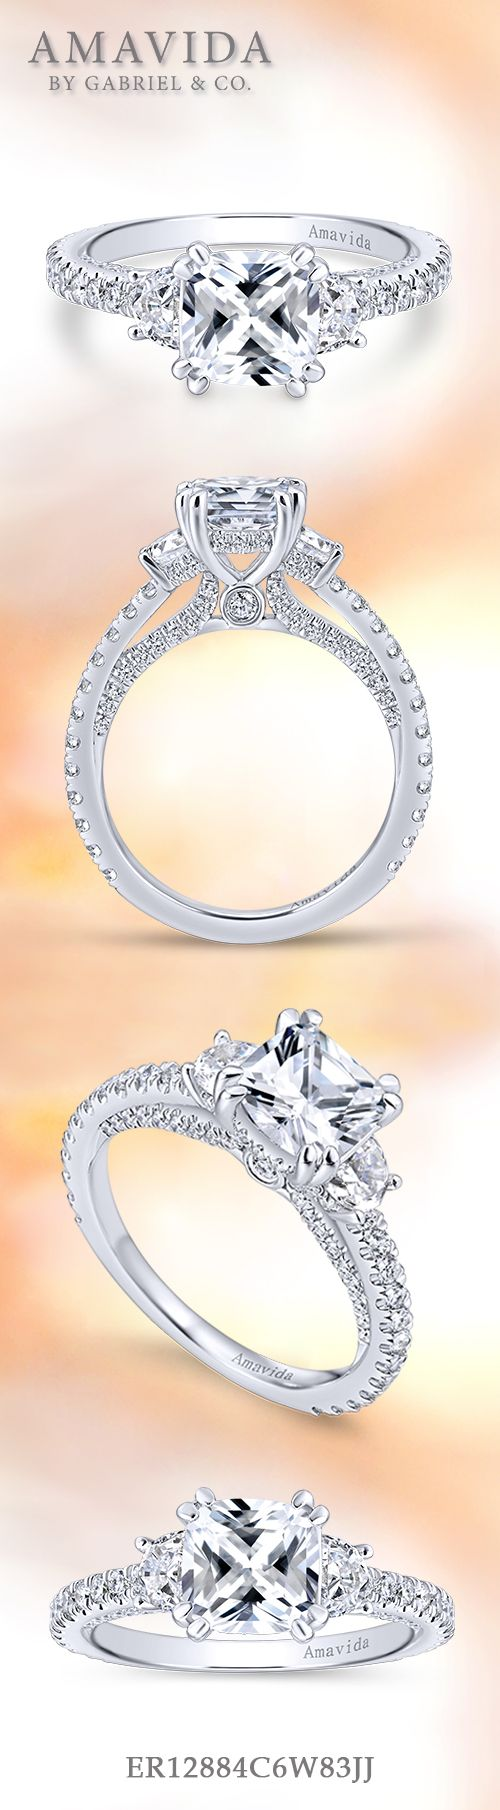 Amavida by Gabriel & Co. - Voted #1 Most Preferred Bridal Brand.   A stunning three stone cushion cut engagement ring with a secure double-prong setting.